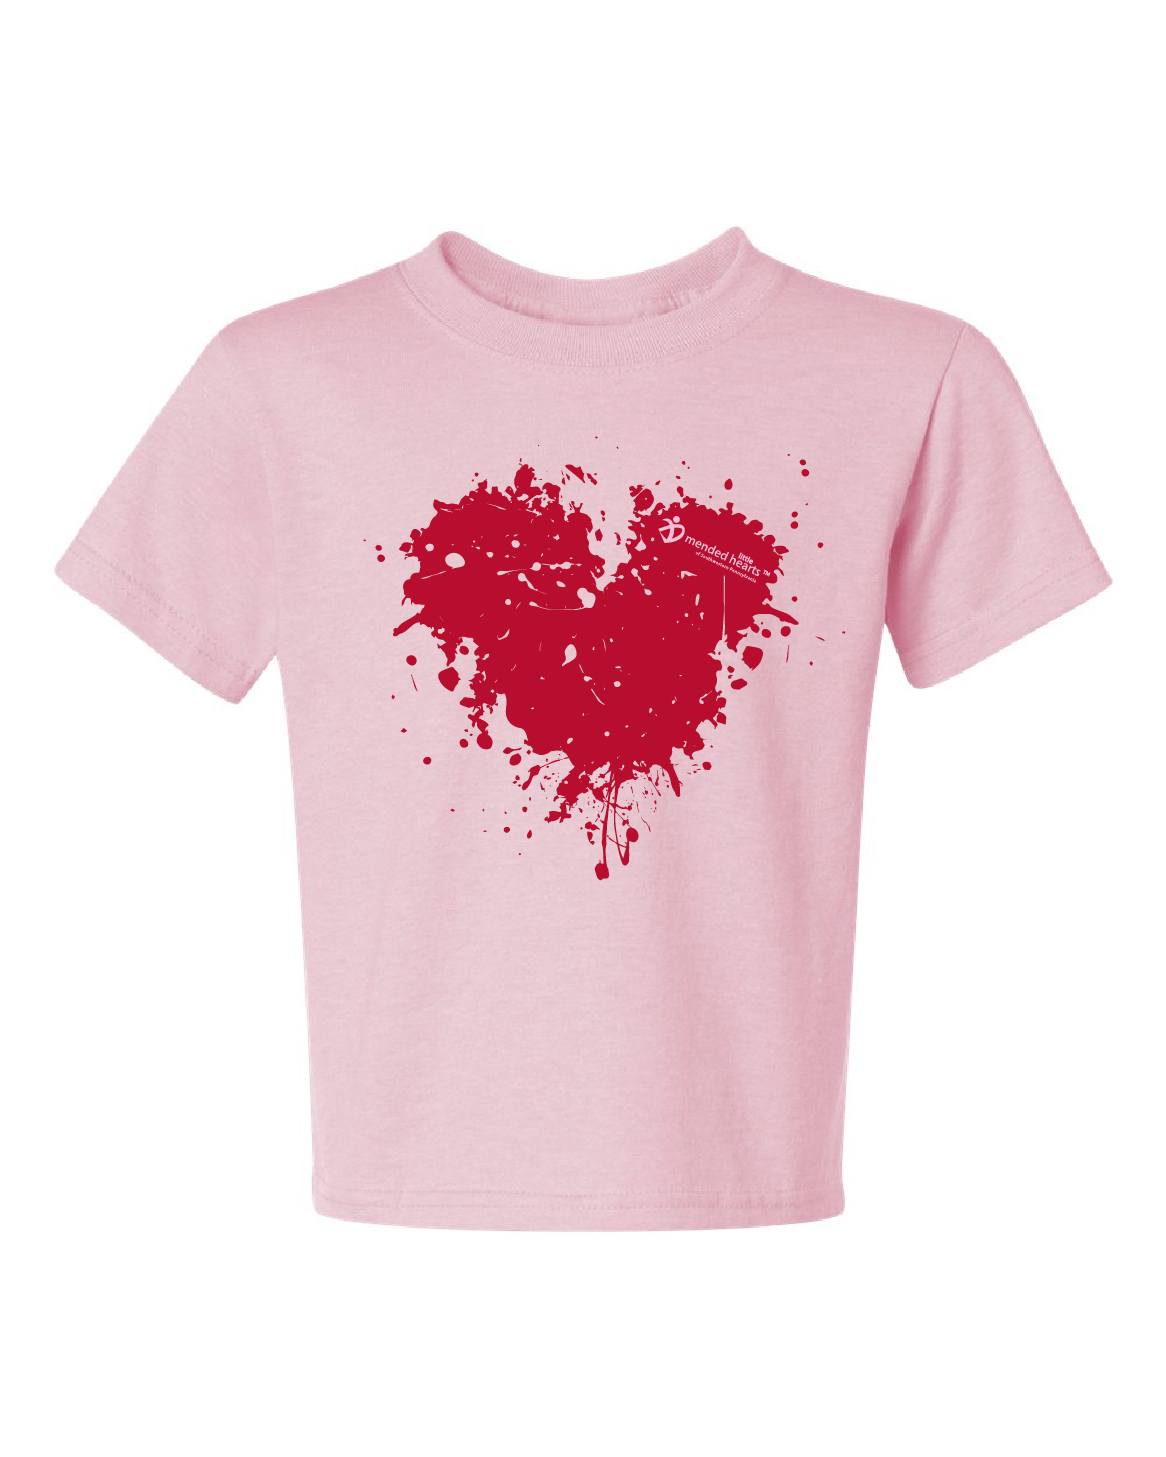 Splatter Heart Youth T-Shirt Available in Multiple Colors